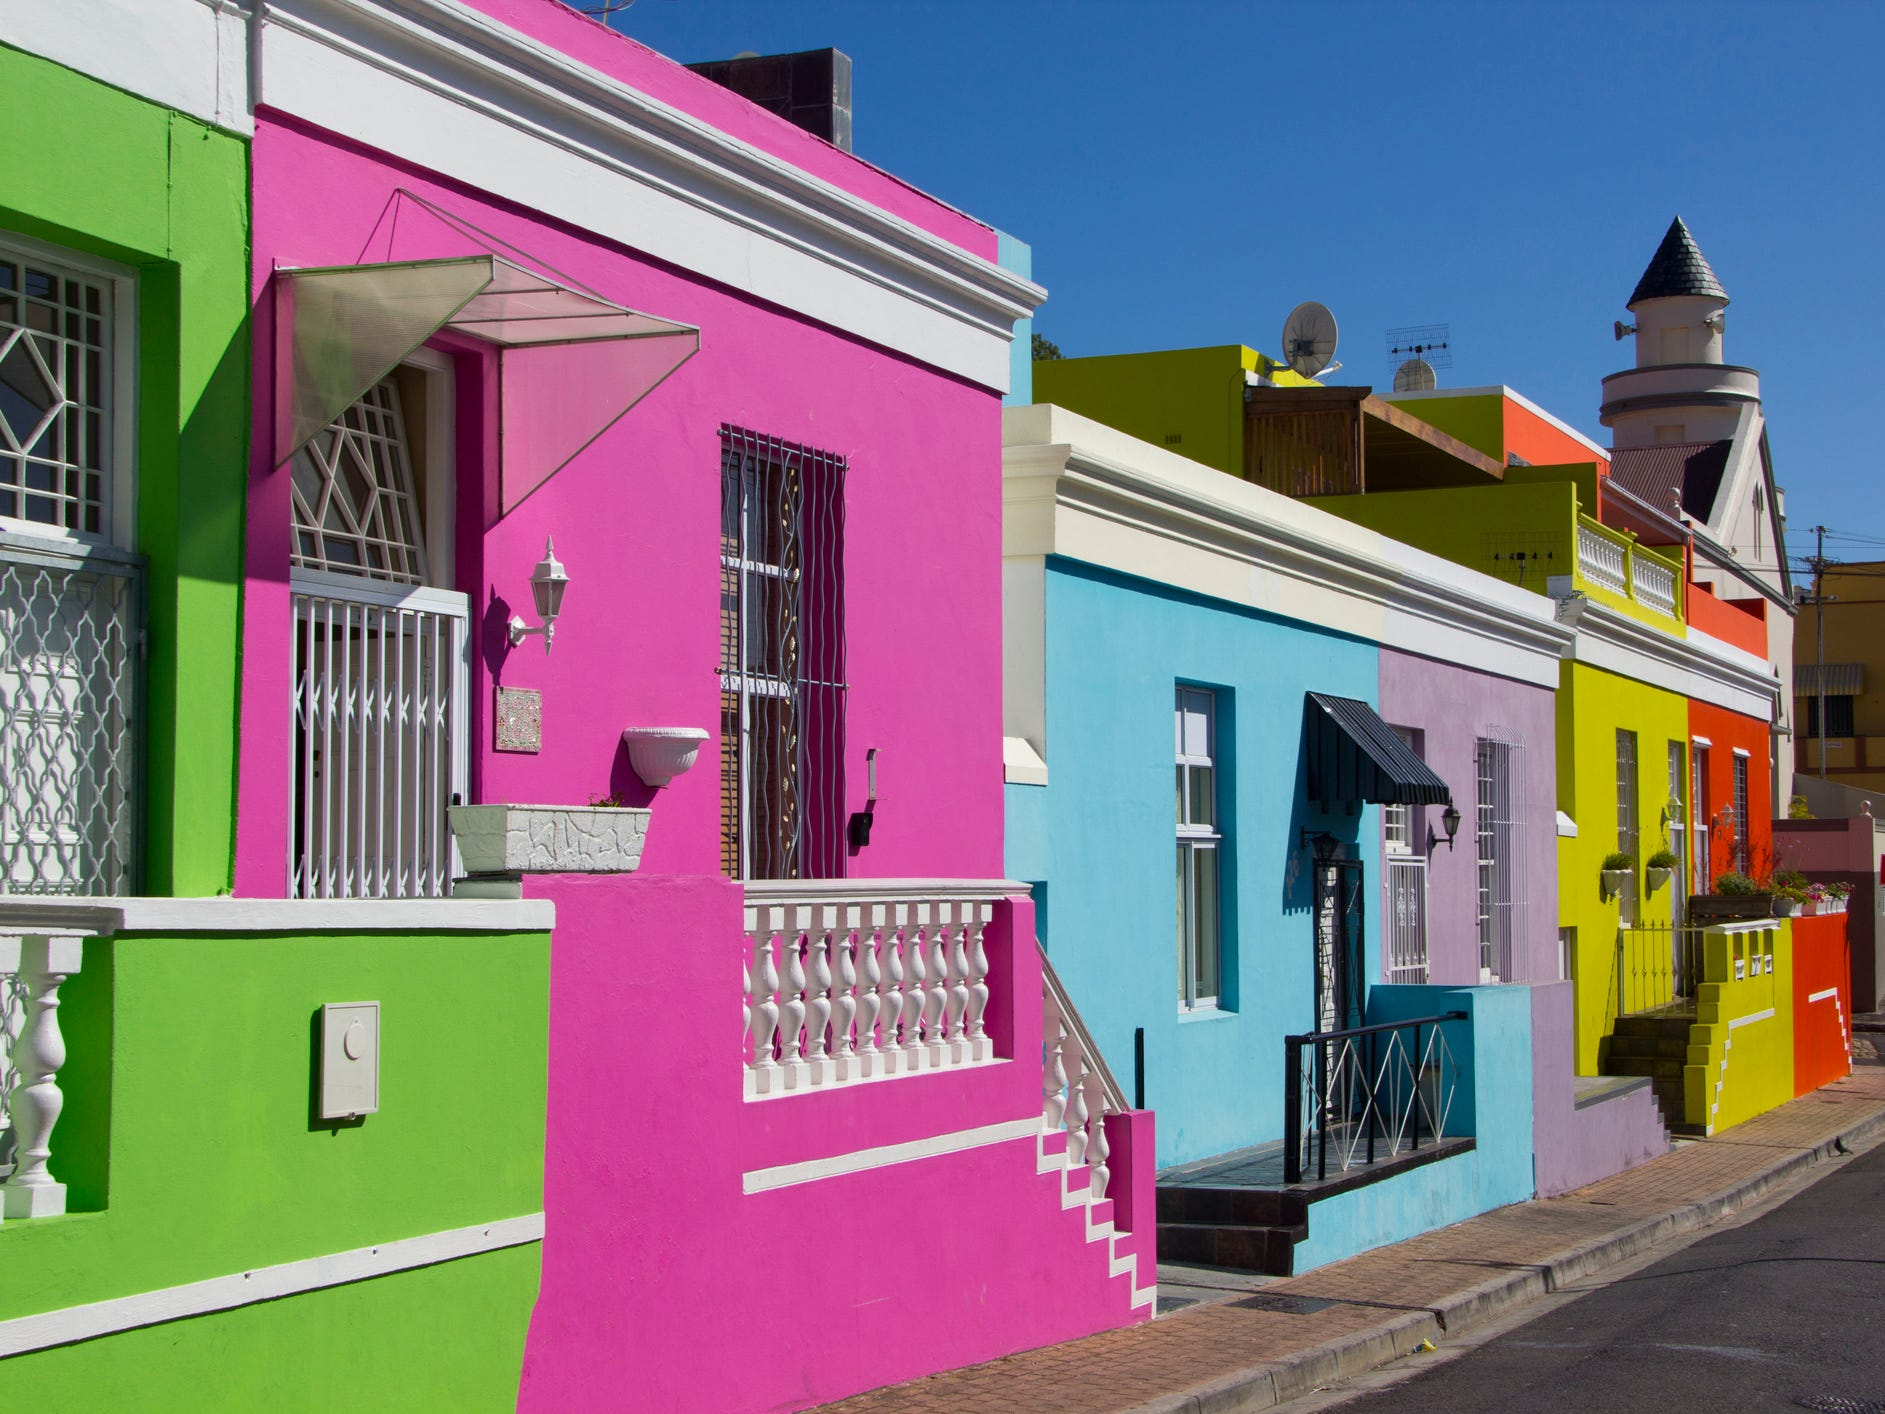 Cape Town, South Africa: Cape Town's rainbow-colored Bo-Kaap neighborhood wasn't always such a kaleidoscope of color. The buildings here were originally used as rental homes for slaves, who weren't allowed to change the white exteriors of the houses.